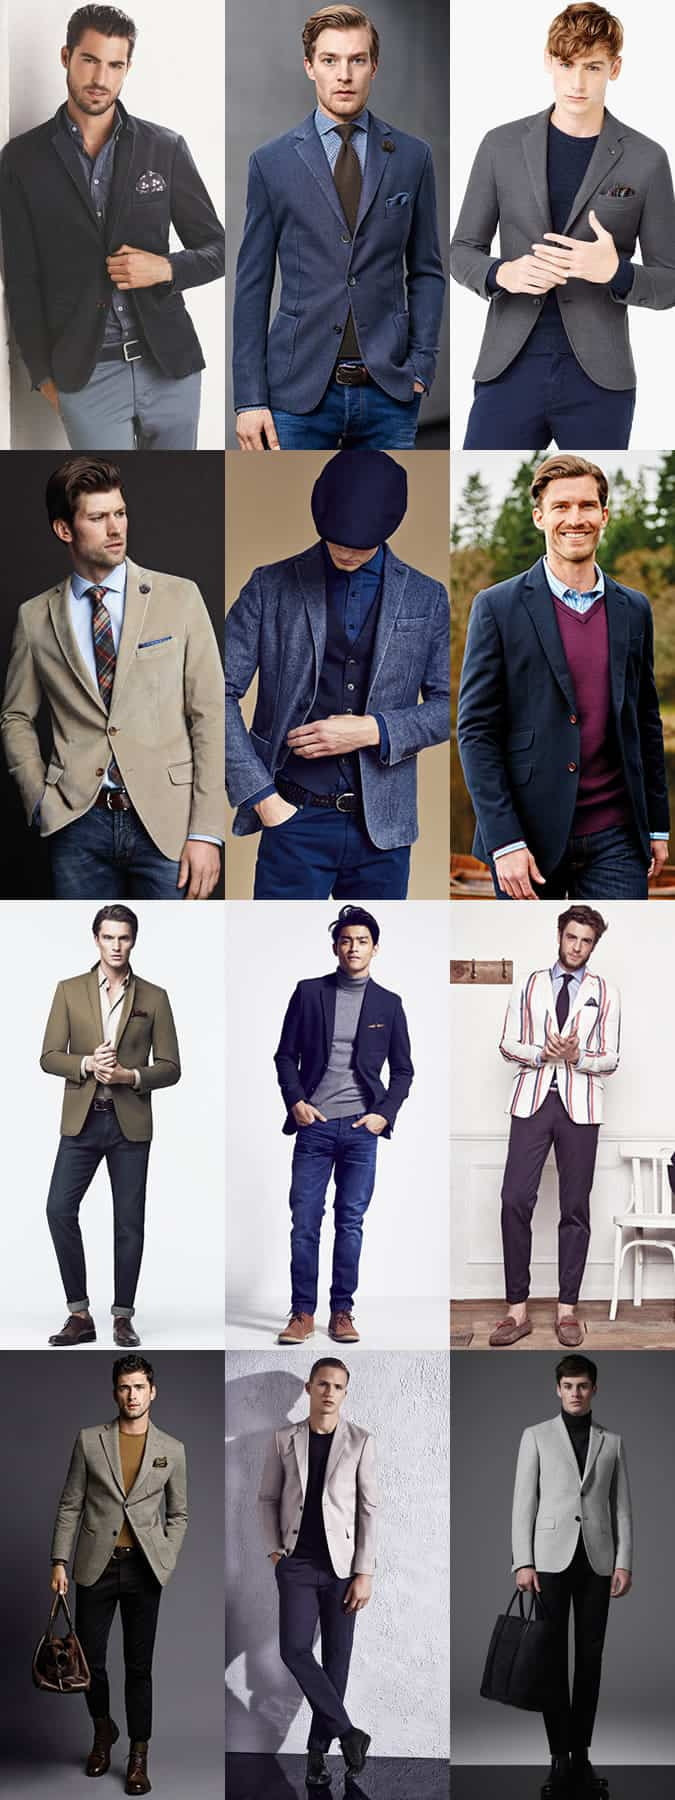 Men's Smart-Casual Outfit Inspiration - The Relaxed Blazer